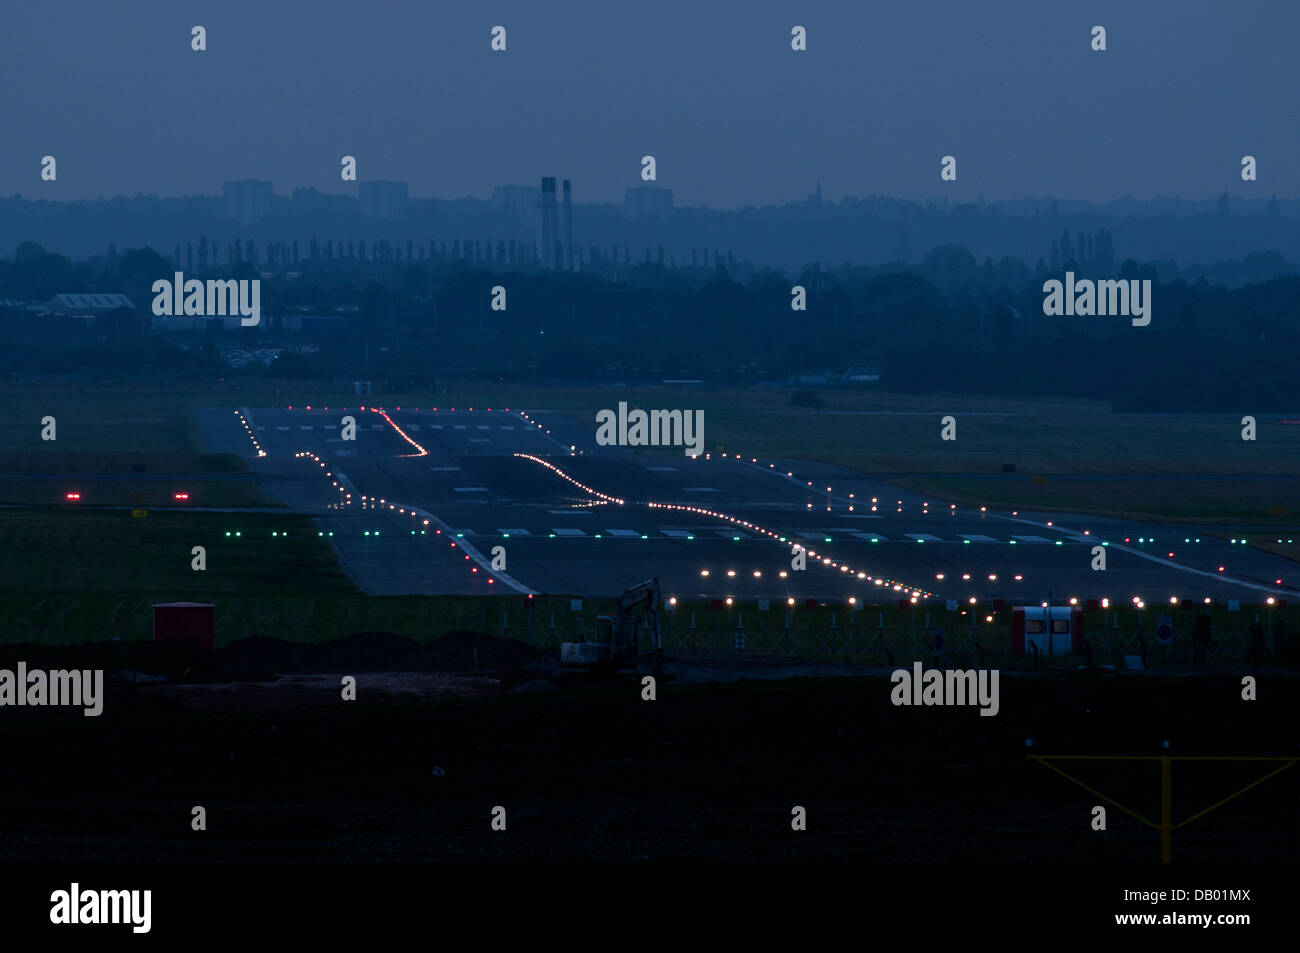 Birmingham Airport Runway Lights   Stock Image